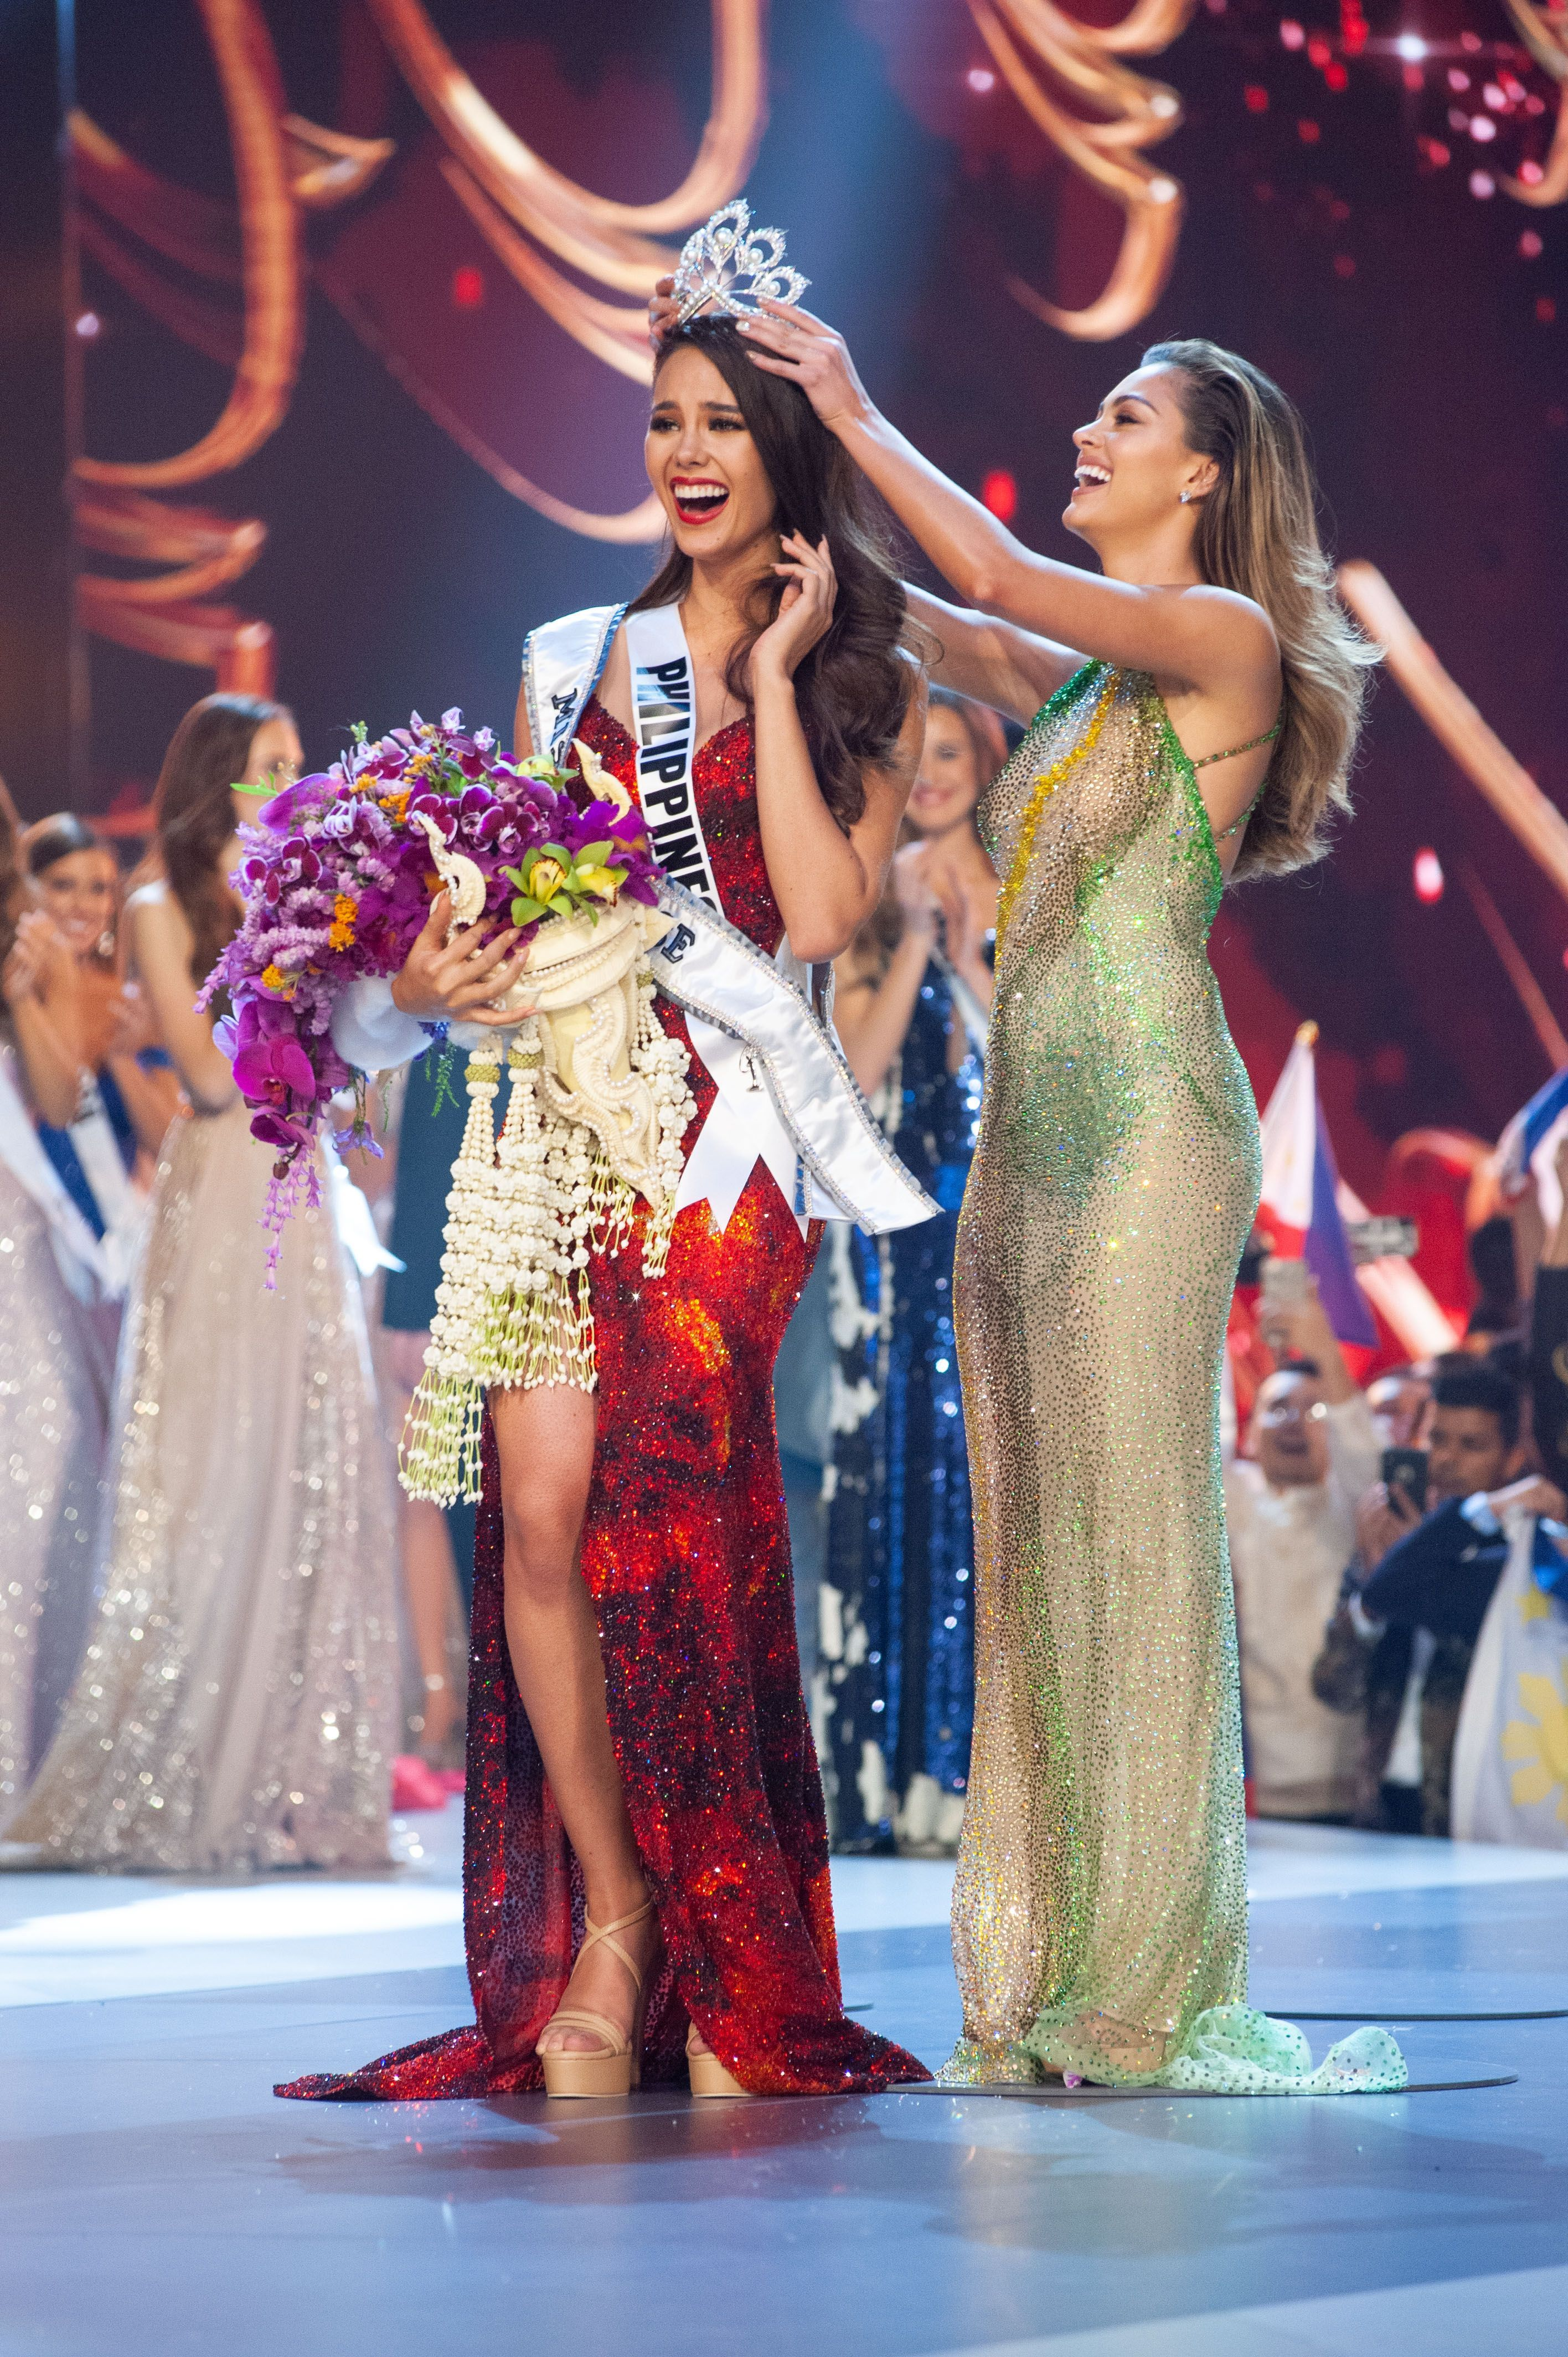 Here is Catriona Gray's crowning moment at the